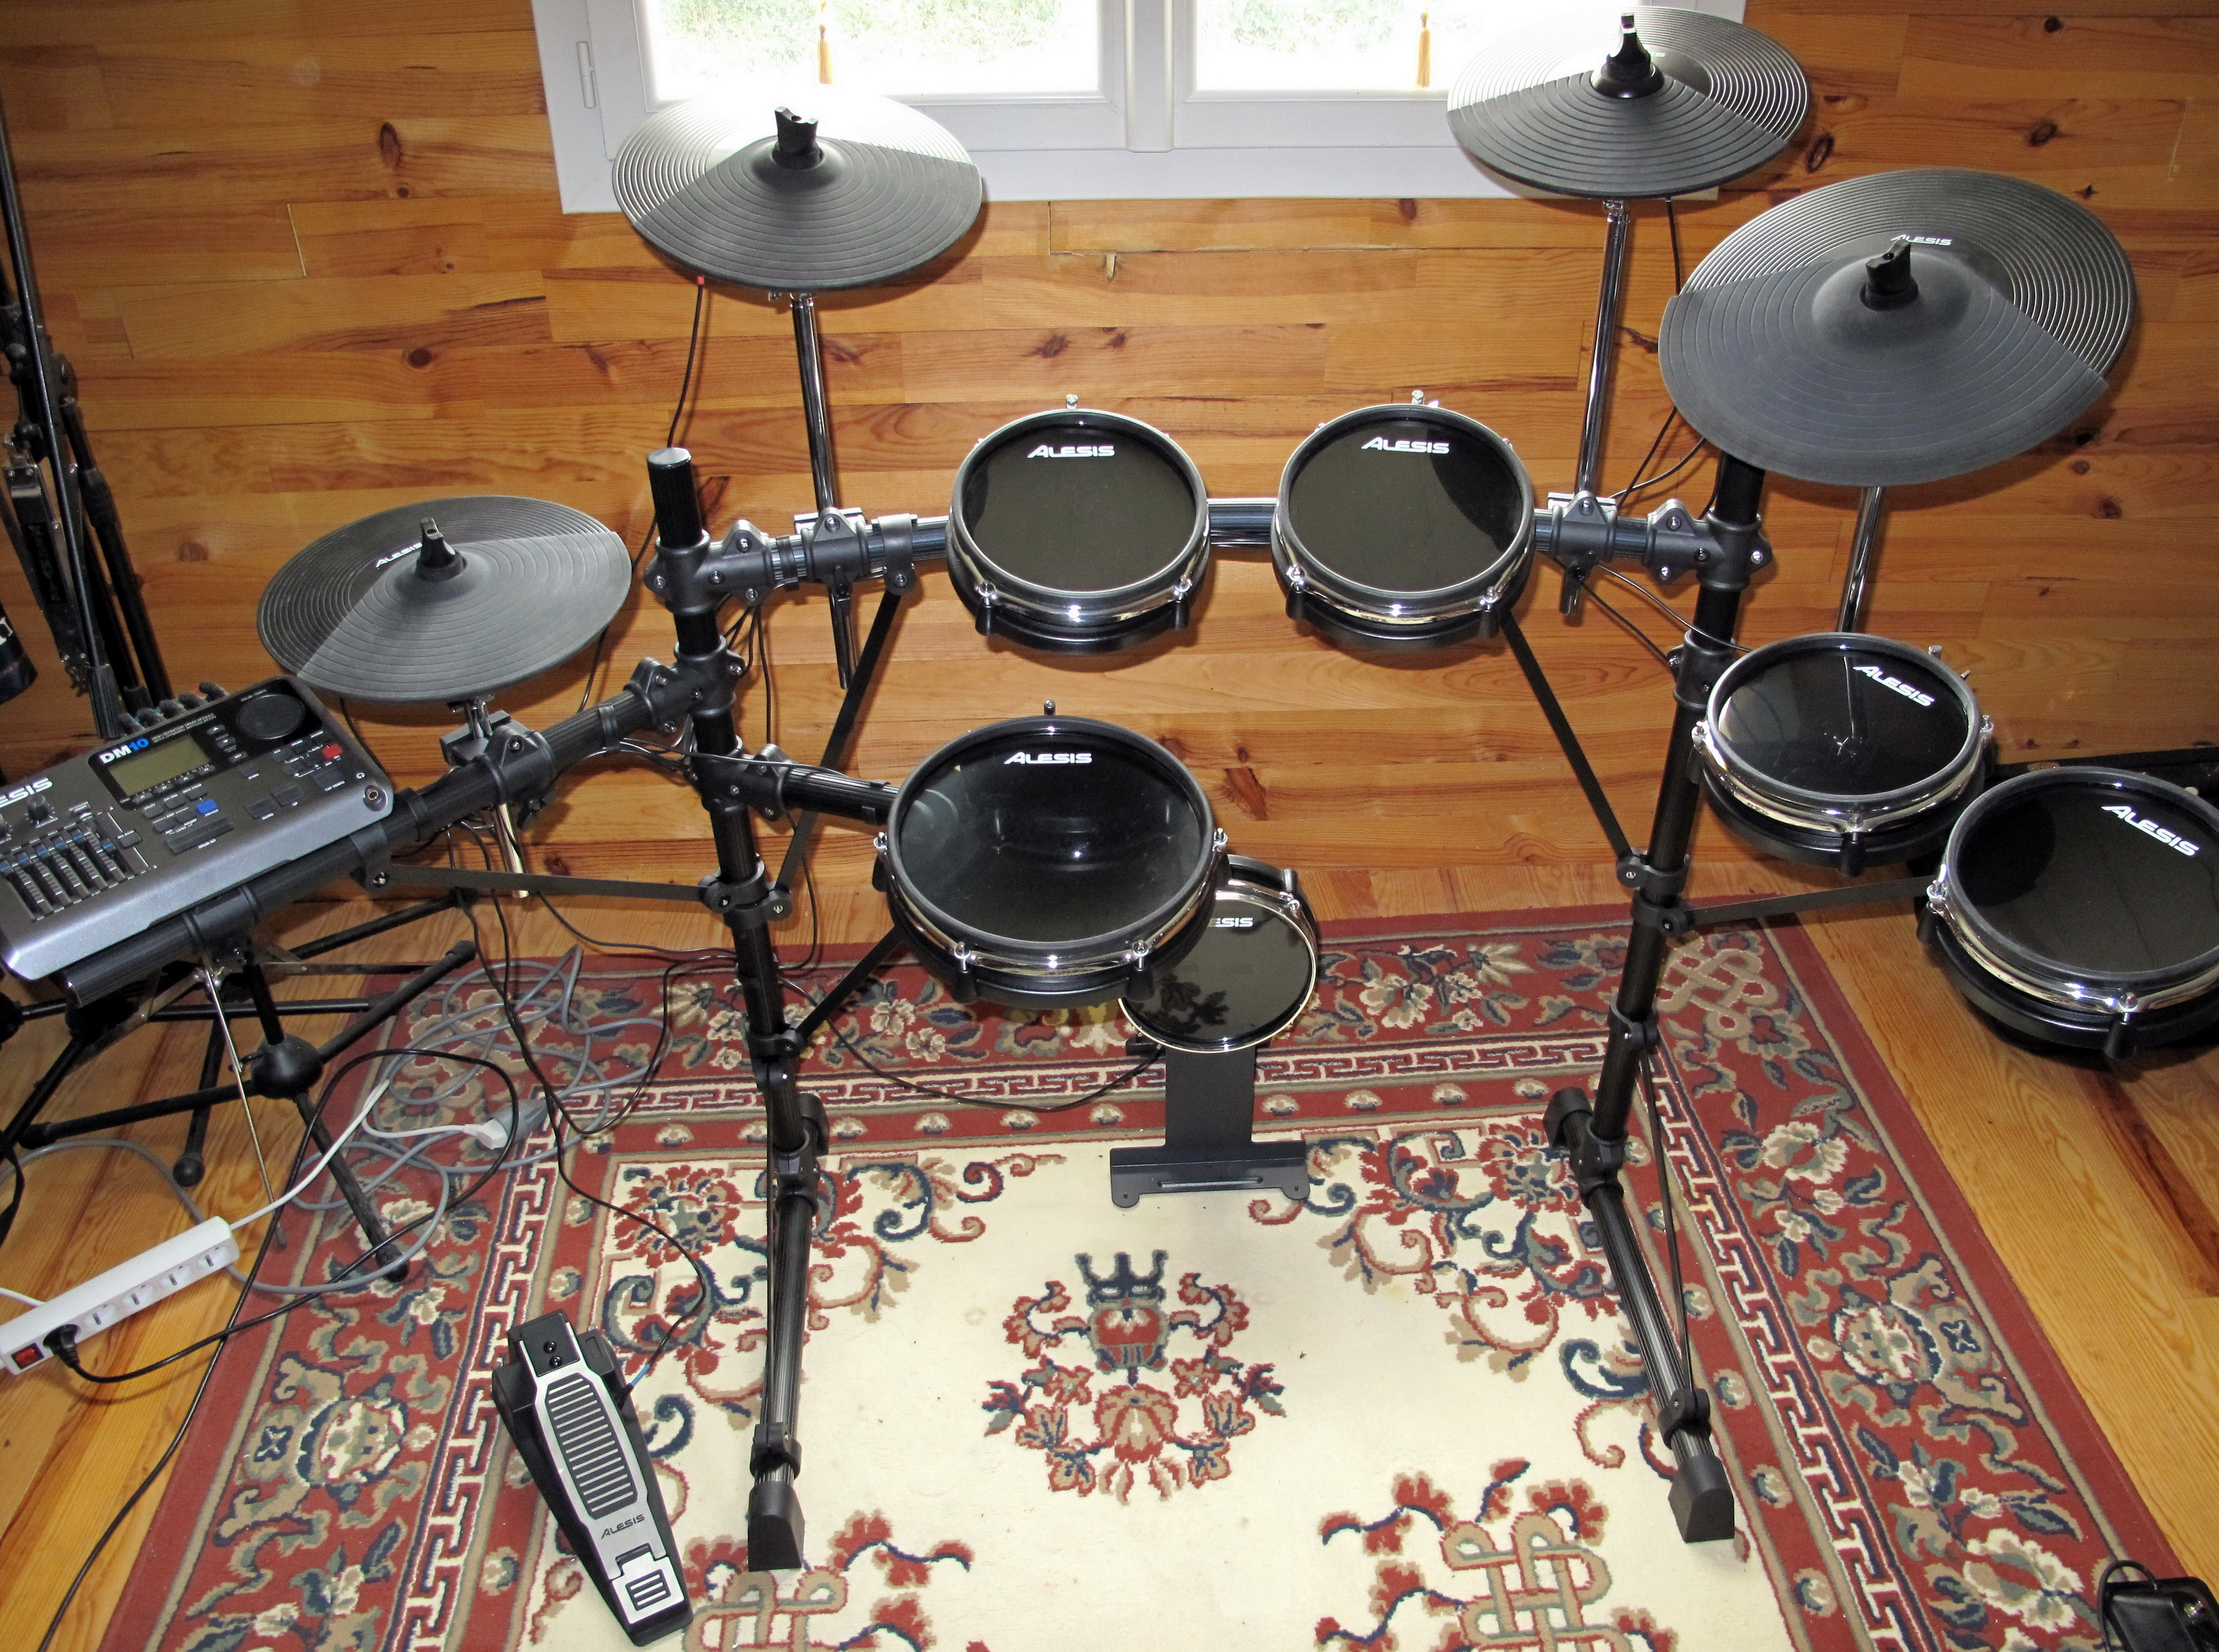 photo alesis dm10 studio kit alesis dm10 studio kit. Black Bedroom Furniture Sets. Home Design Ideas